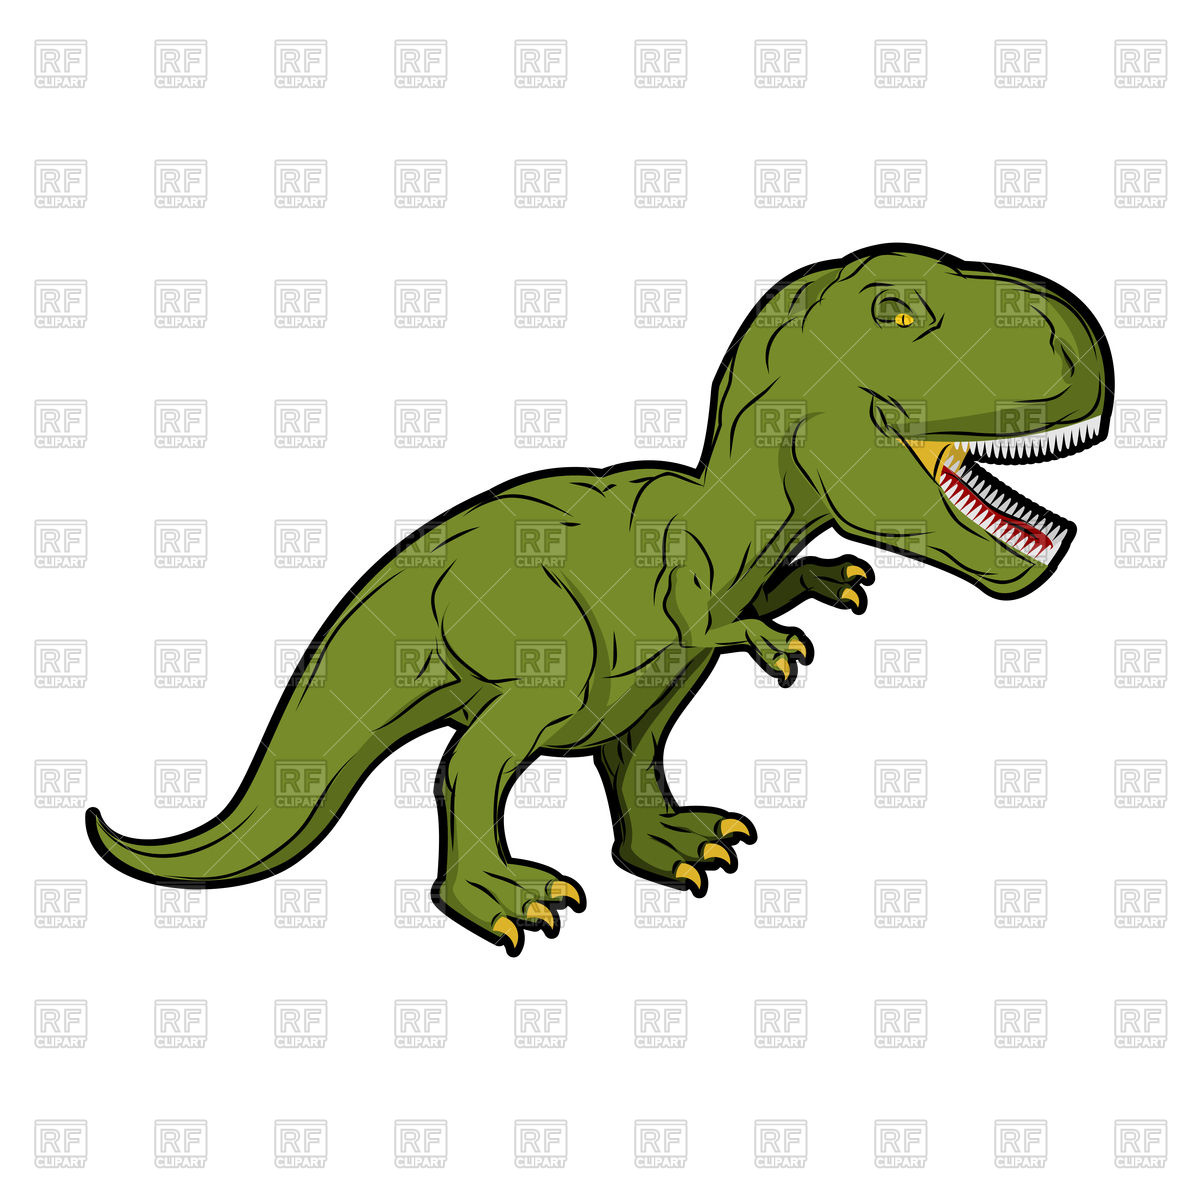 Trex clipart animated. T rex free download